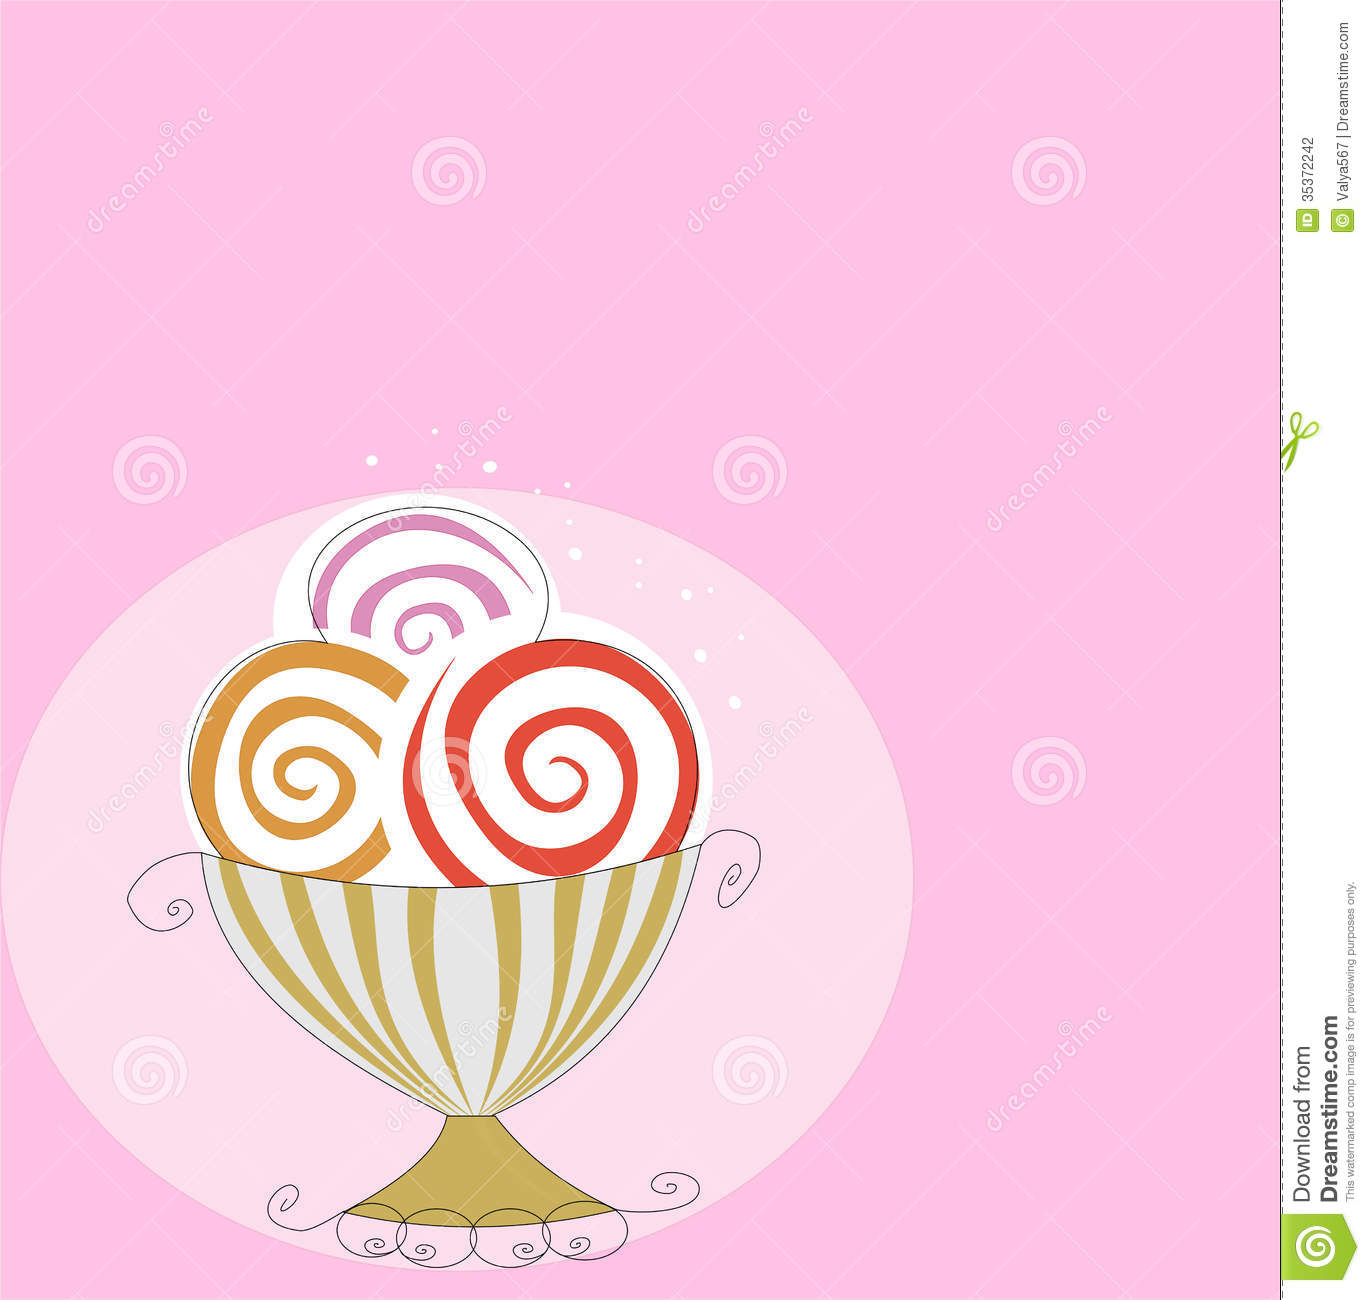 Ice Cream Images Ice Creams Wallpaper And Background: Cute Ice Cream Wallpaper